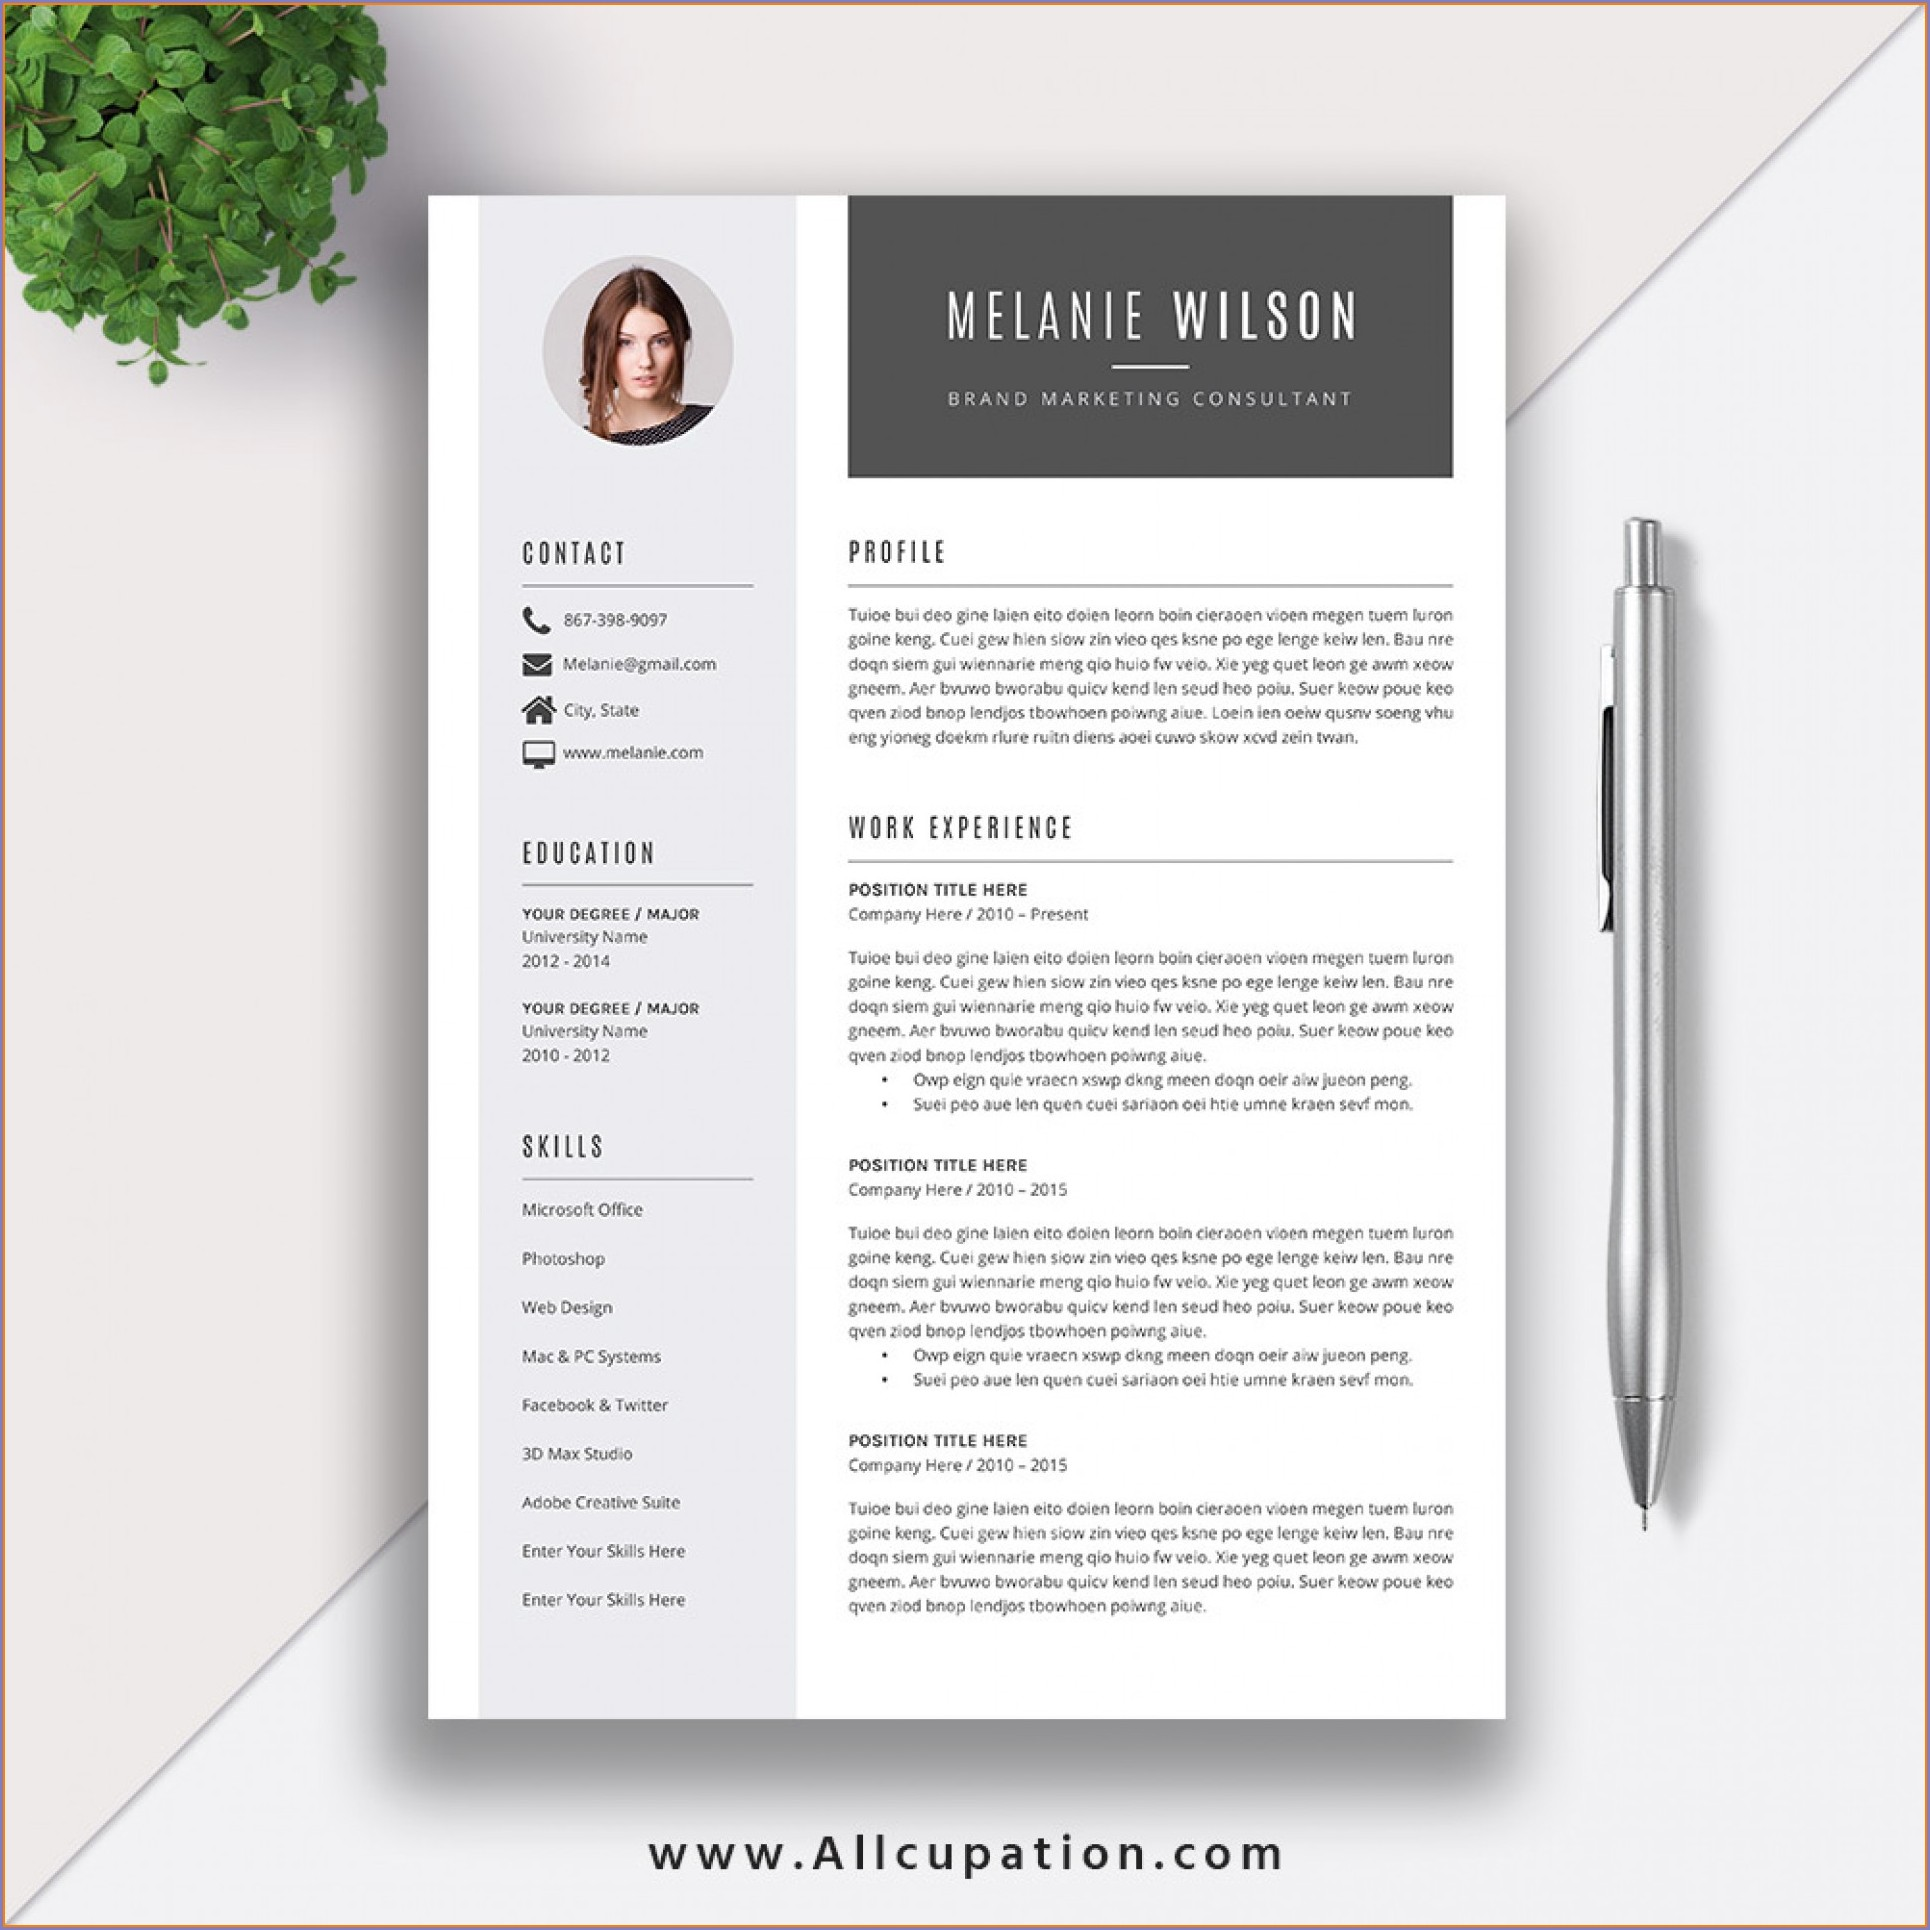 Resume Templates Word 2003 Free Downloads